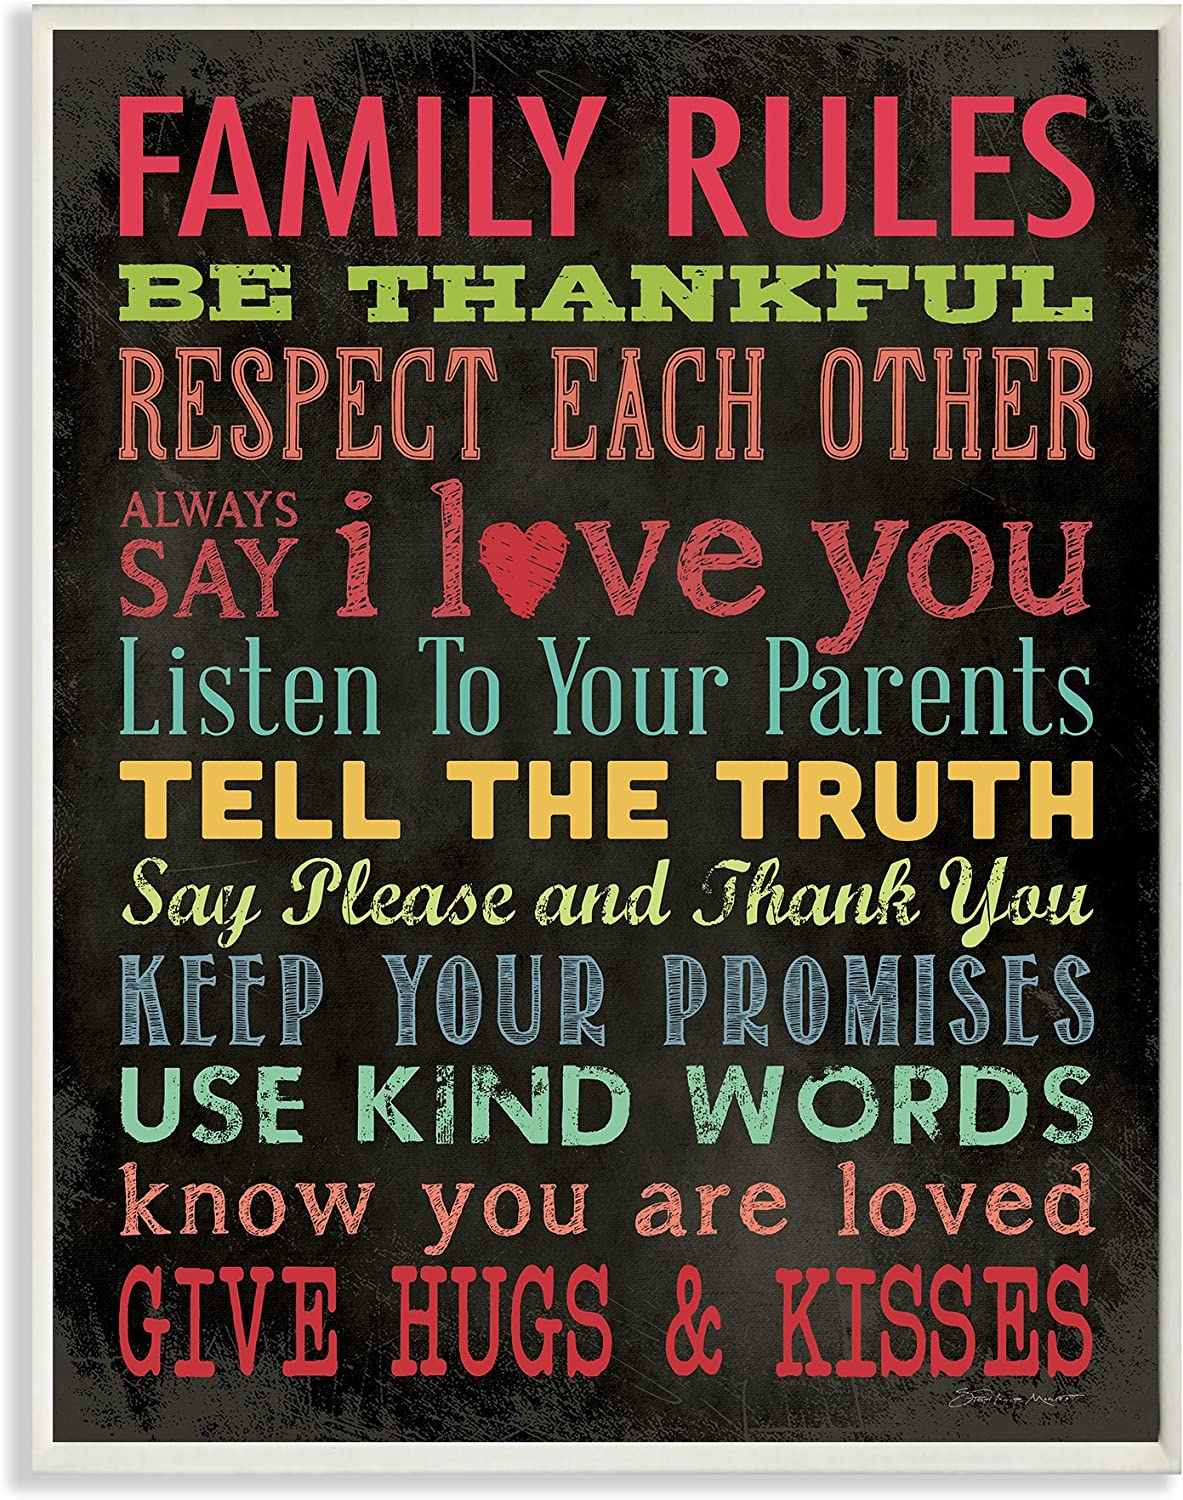 Stupell Industries Family Rules Chalkboard Style Oversized Wall Plaque Art, 12.5 x 0.5 x 18.5, Multi-Color